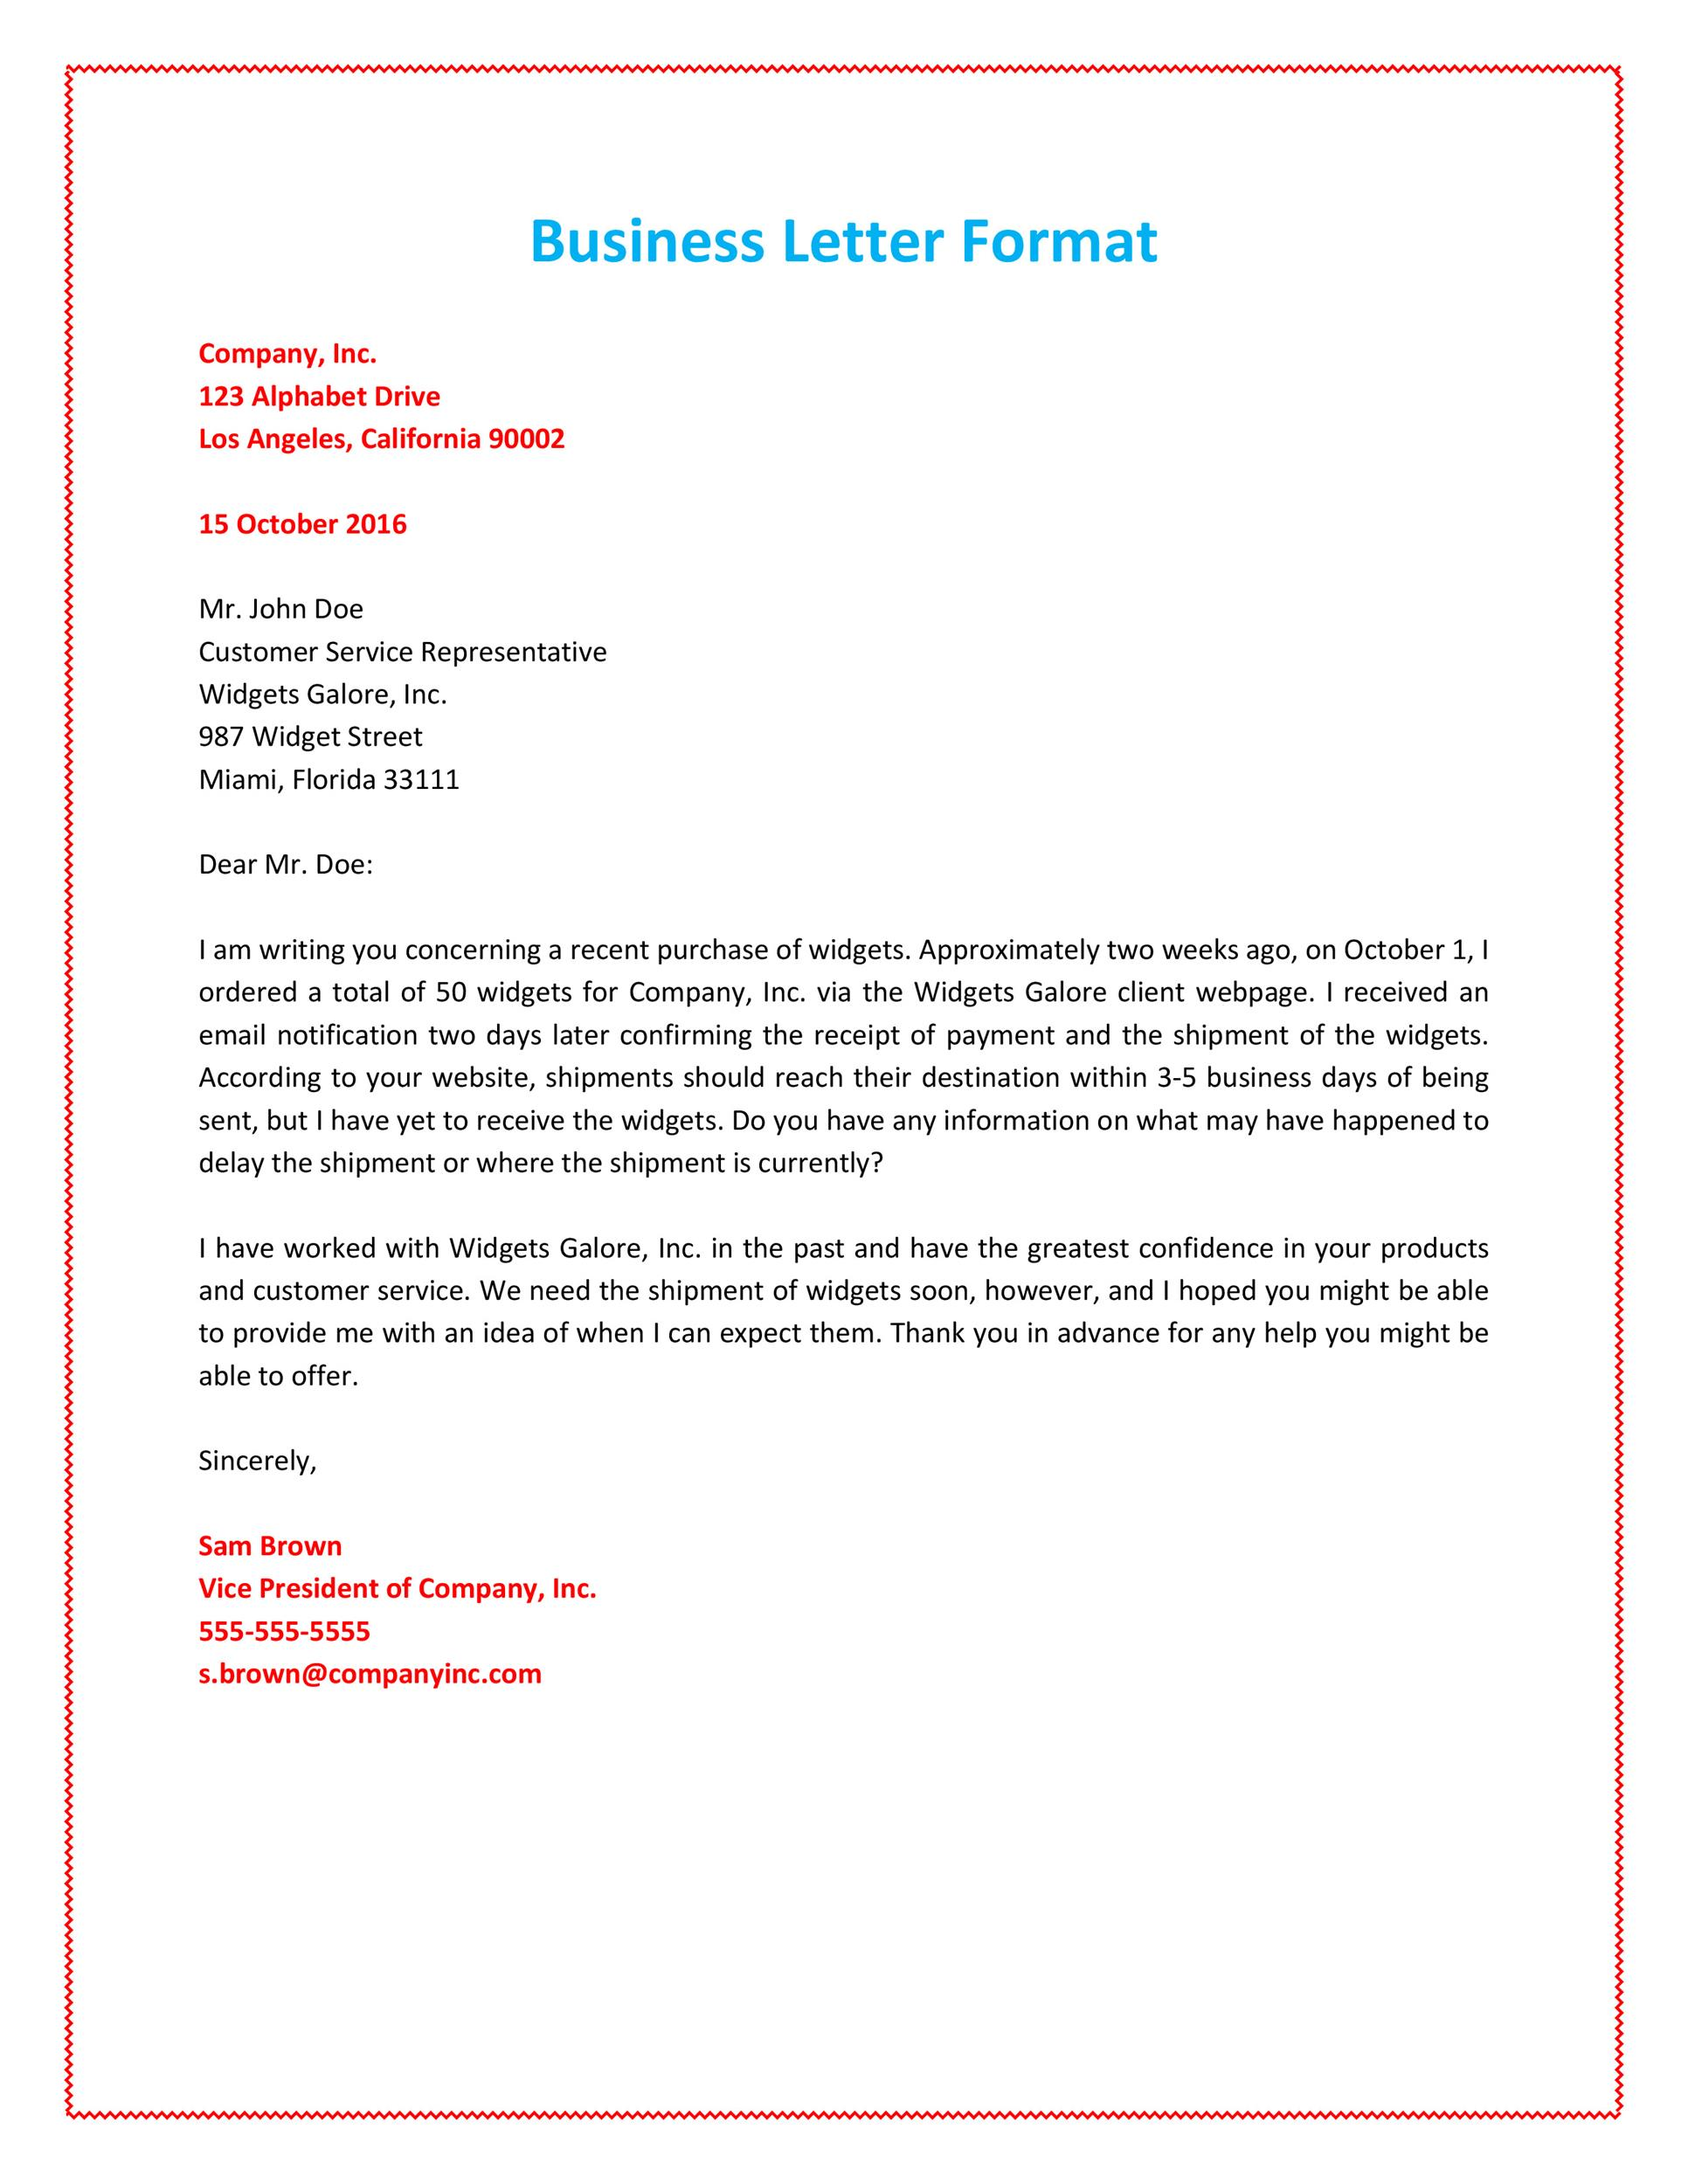 Sample business letters templates vatozozdevelopment sample business letters templates friedricerecipe